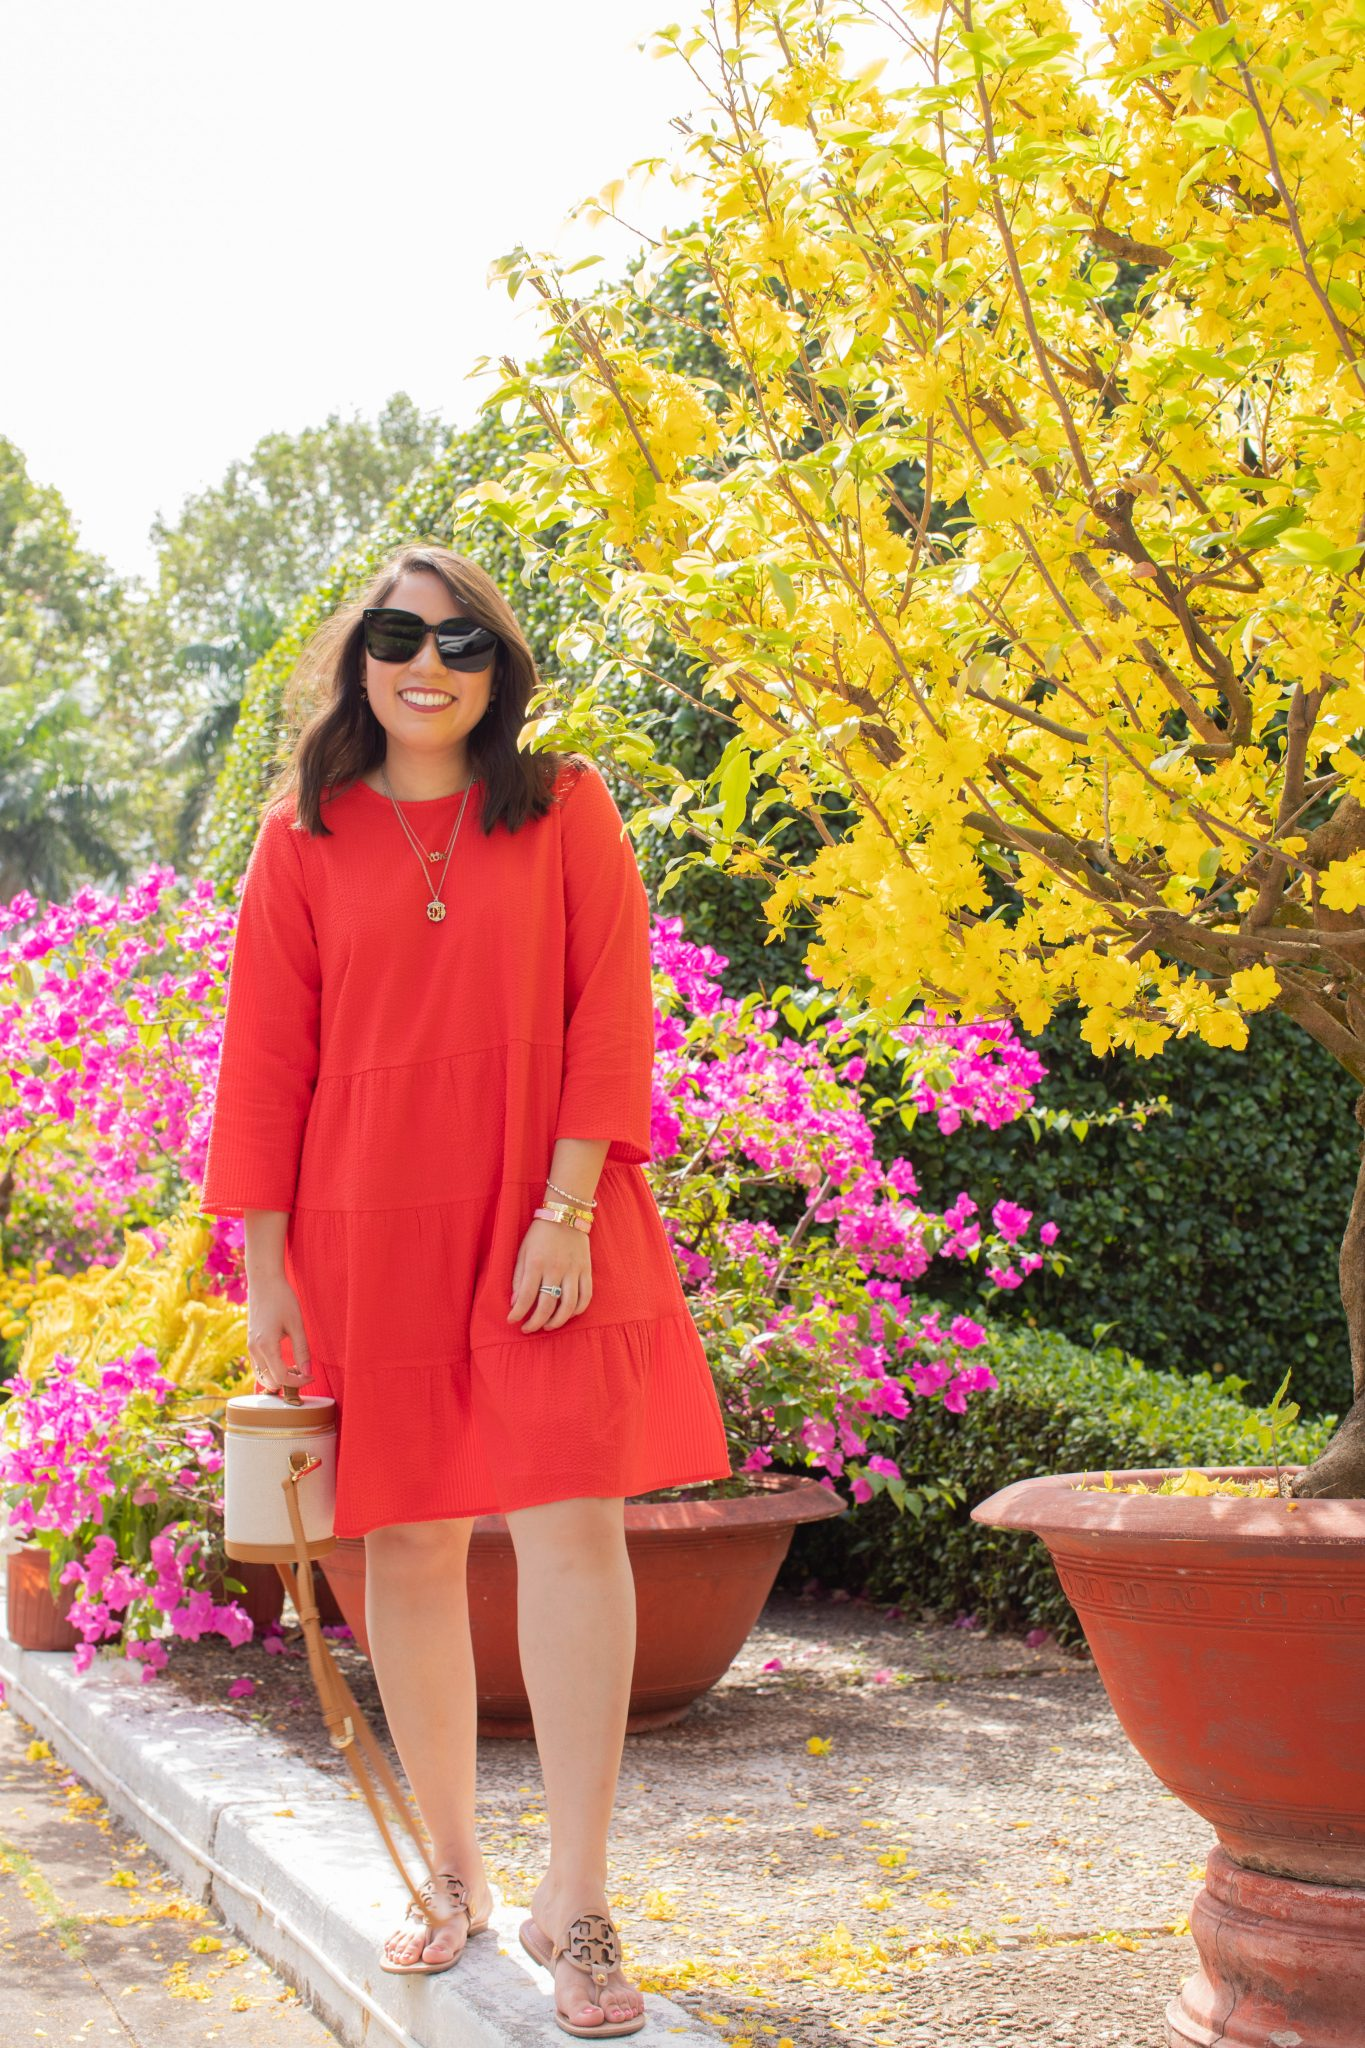 5 Things I'm Grateful For August 2020 by popular NYC life and style blog, Live Laugh Linda: image of woman in red Asos dress and Paravel Crossbody Capsule